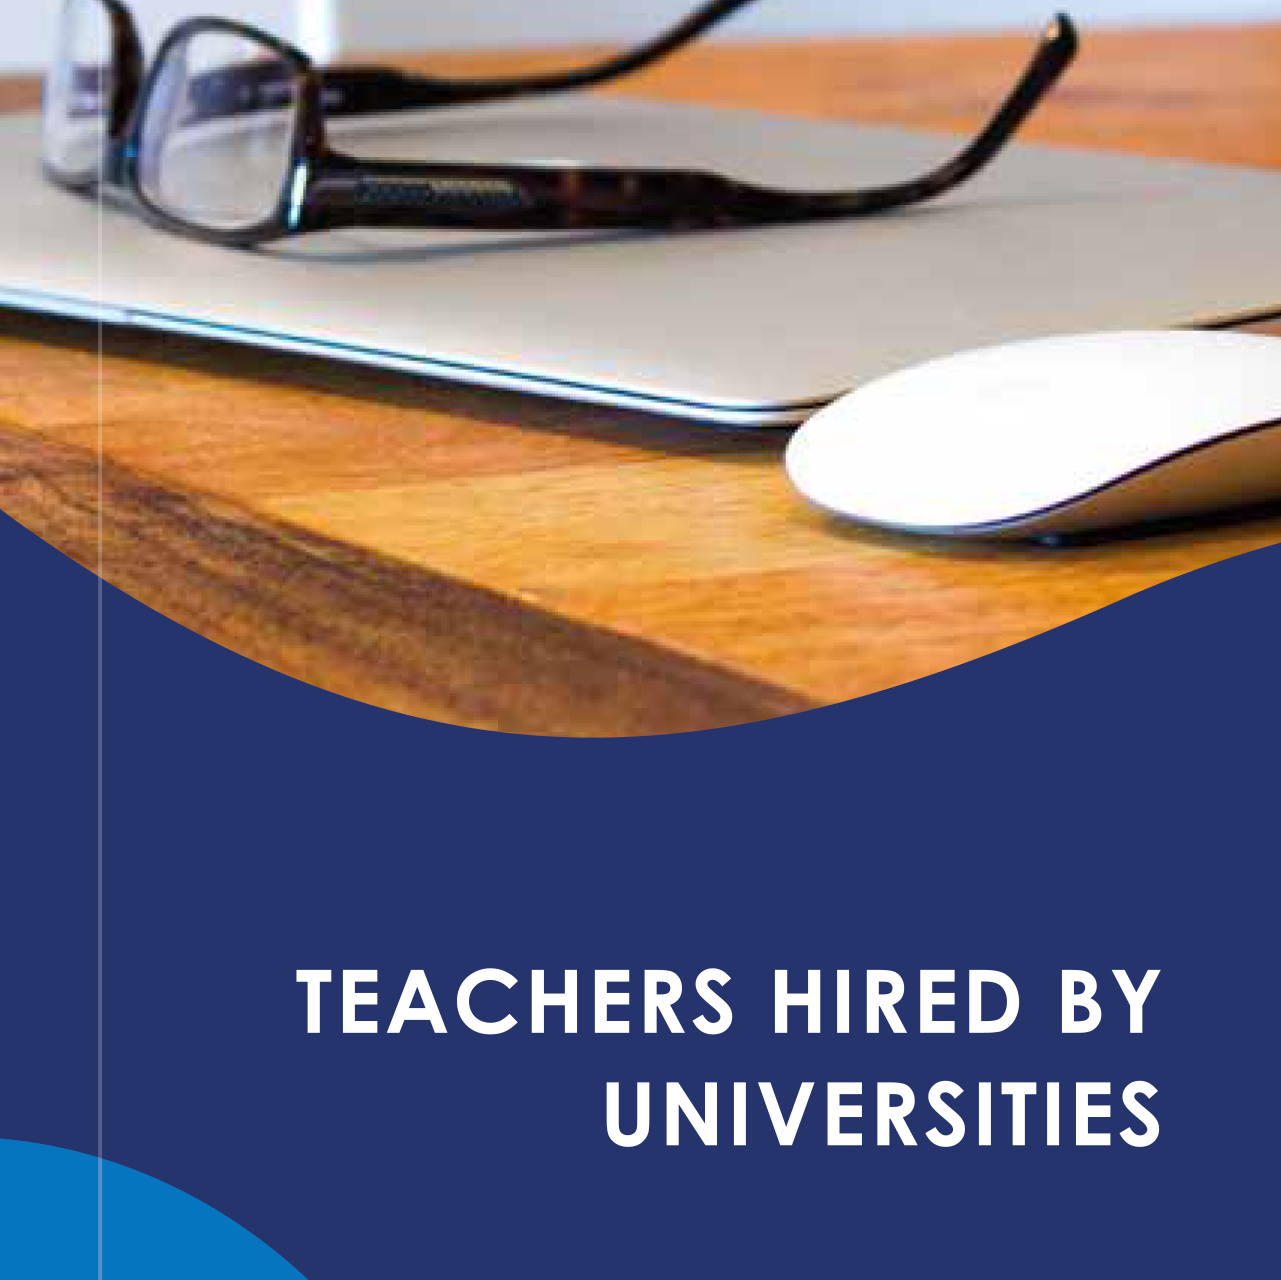 Teachers hired by universities